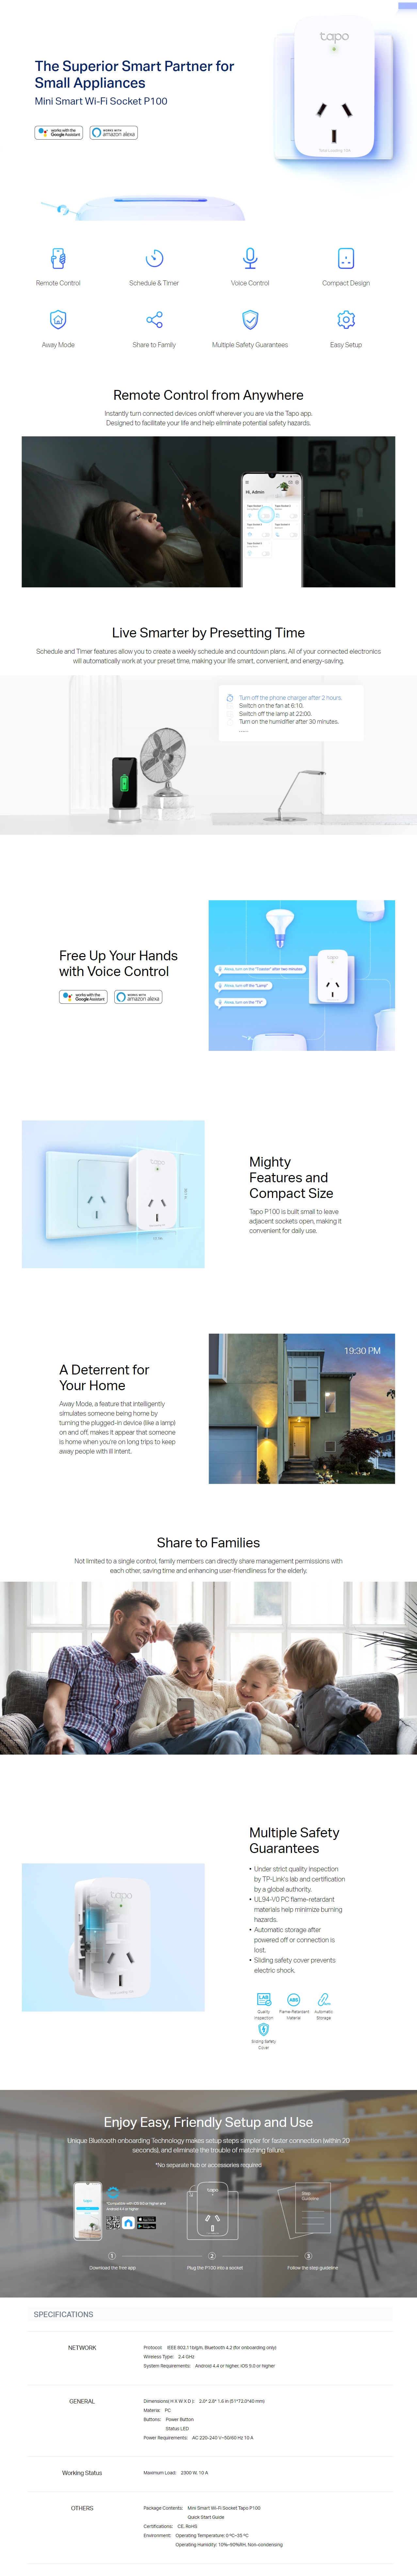 A large marketing image providing additional information about the product TP-LINK Tapo P100 Mini Smart WiFi Socket - Additional alt info not provided